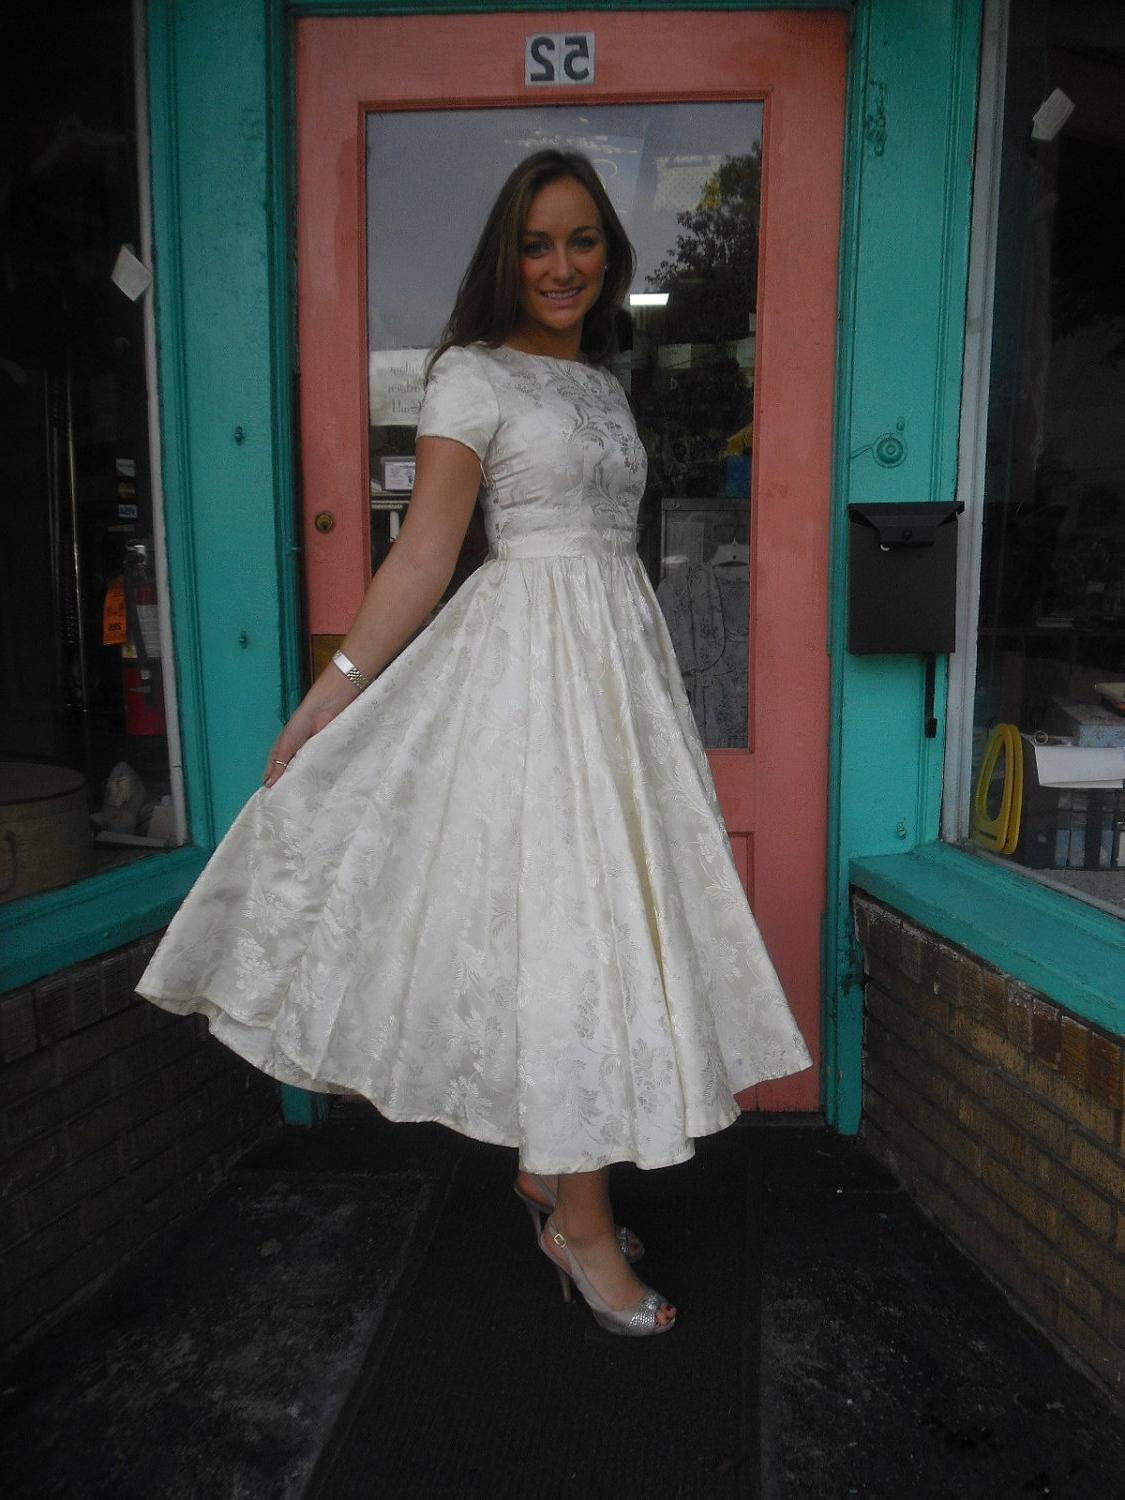 Totally FABULOUS 1950s Vintage Dress New Look Wedding Dress 34 in Bust FREE